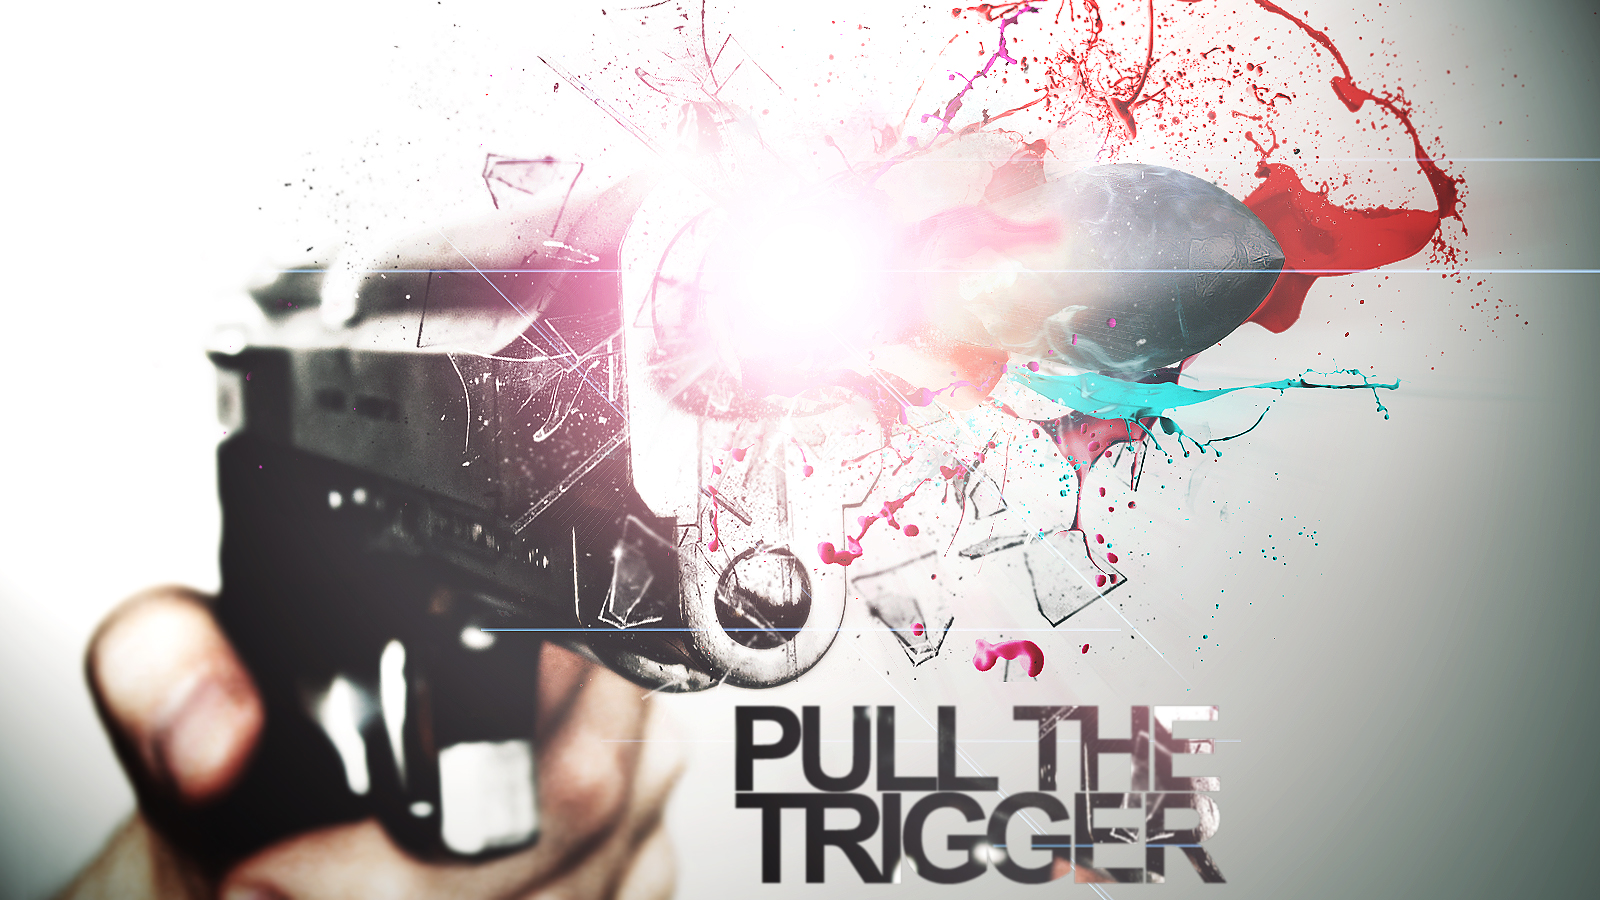 gun trigger wallpaper - photo #32